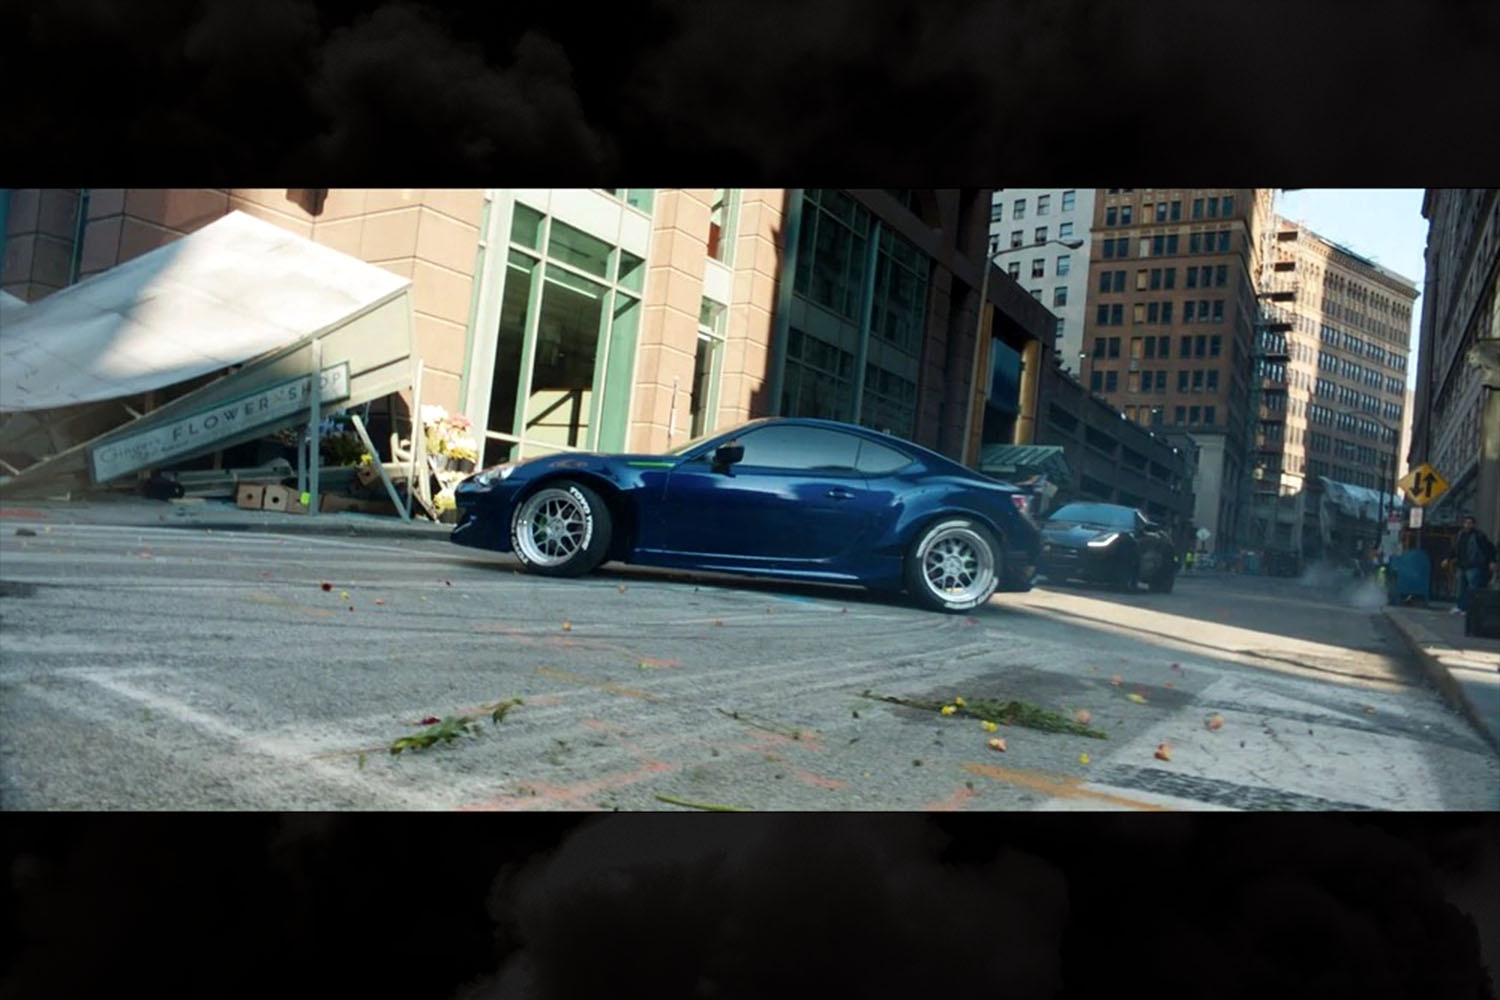 A blue 2017 Subaru BRZ driven by Little Nobody (Scott Eastwood) in The Fate of the Furious. Not an especially memorable car.